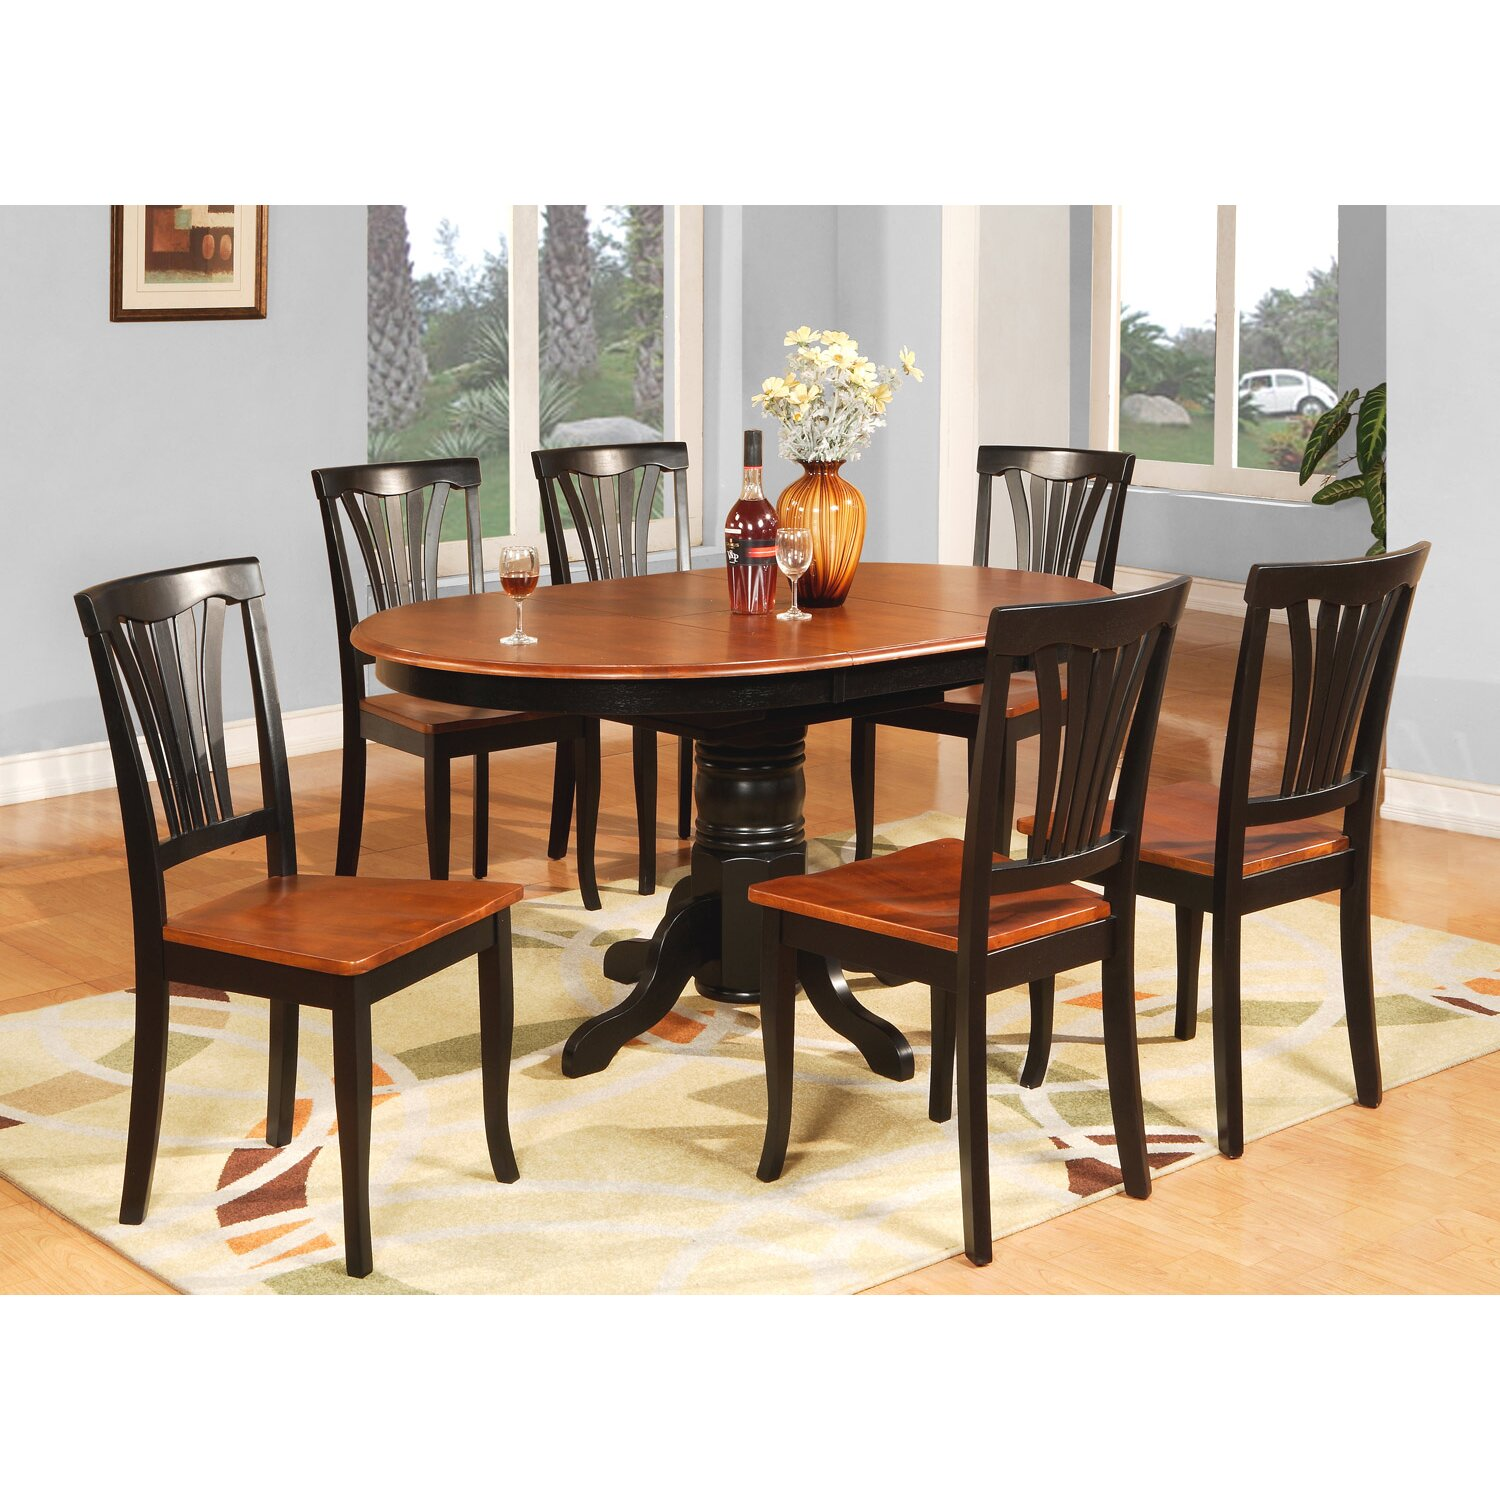 4 Person Dining Room Set Dining Room Tables Great Dining Room